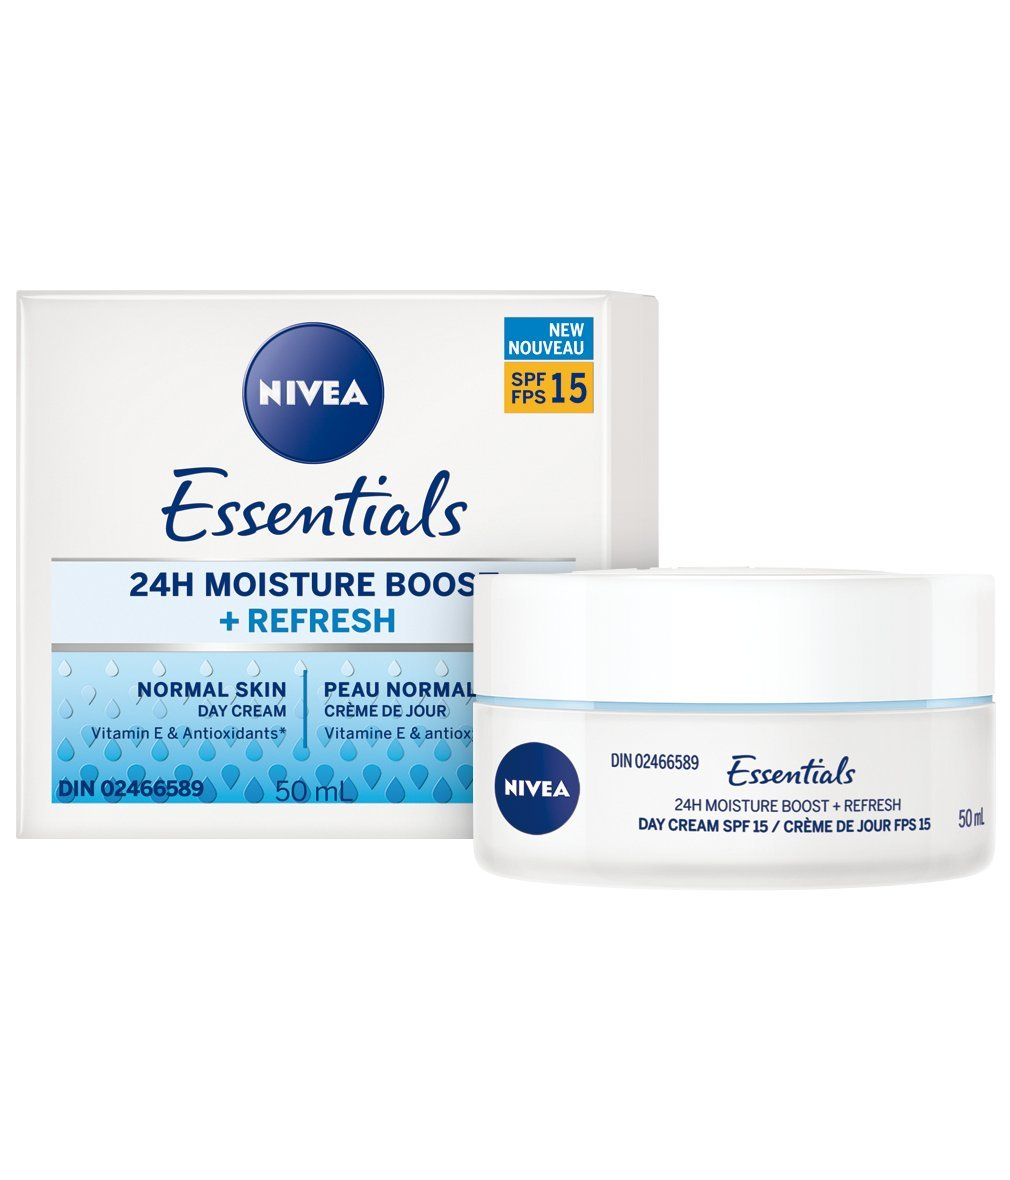 NIVEA Essentials 24h Moisture Boost + Nourish Day Cream with SPF15 for Dry Skin, 50 mL jar 50 mL jar Beiersdorf Canada Inc.